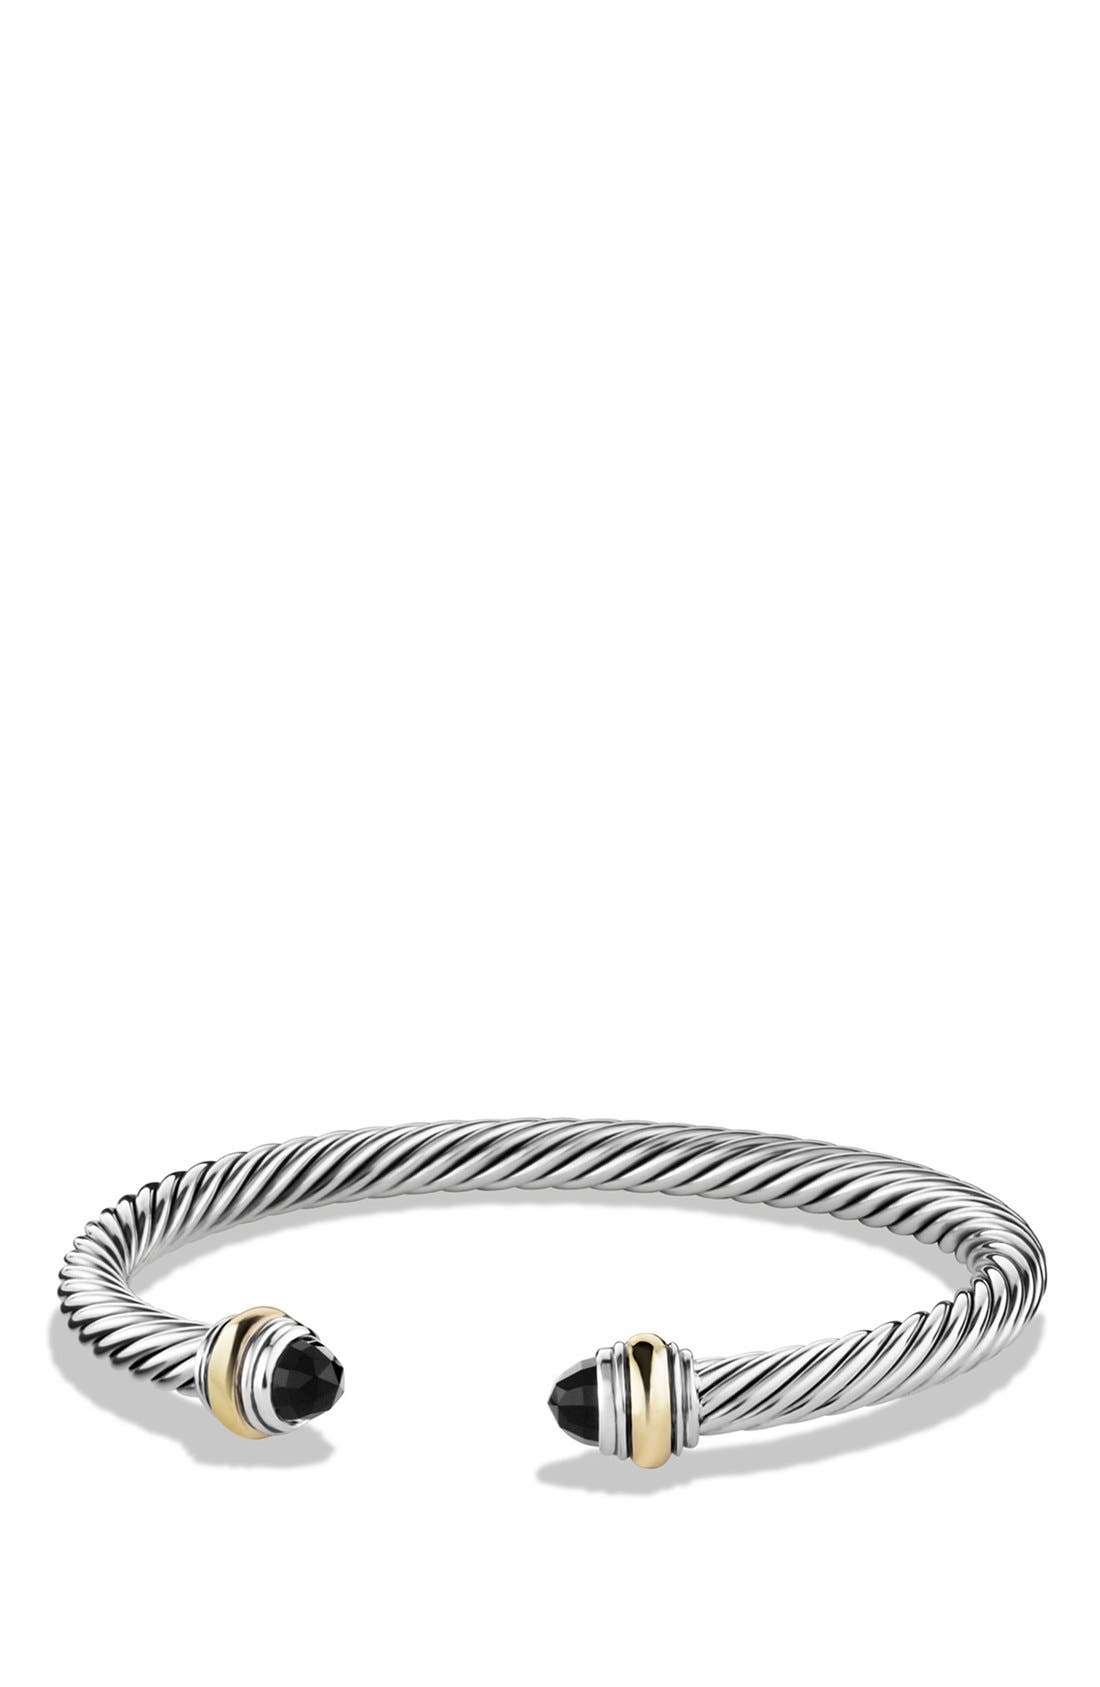 Cable Classics Bracelet with Semiprecious Stones & 14K Gold Accent, 5mm, Main, color, BLACK ONYX